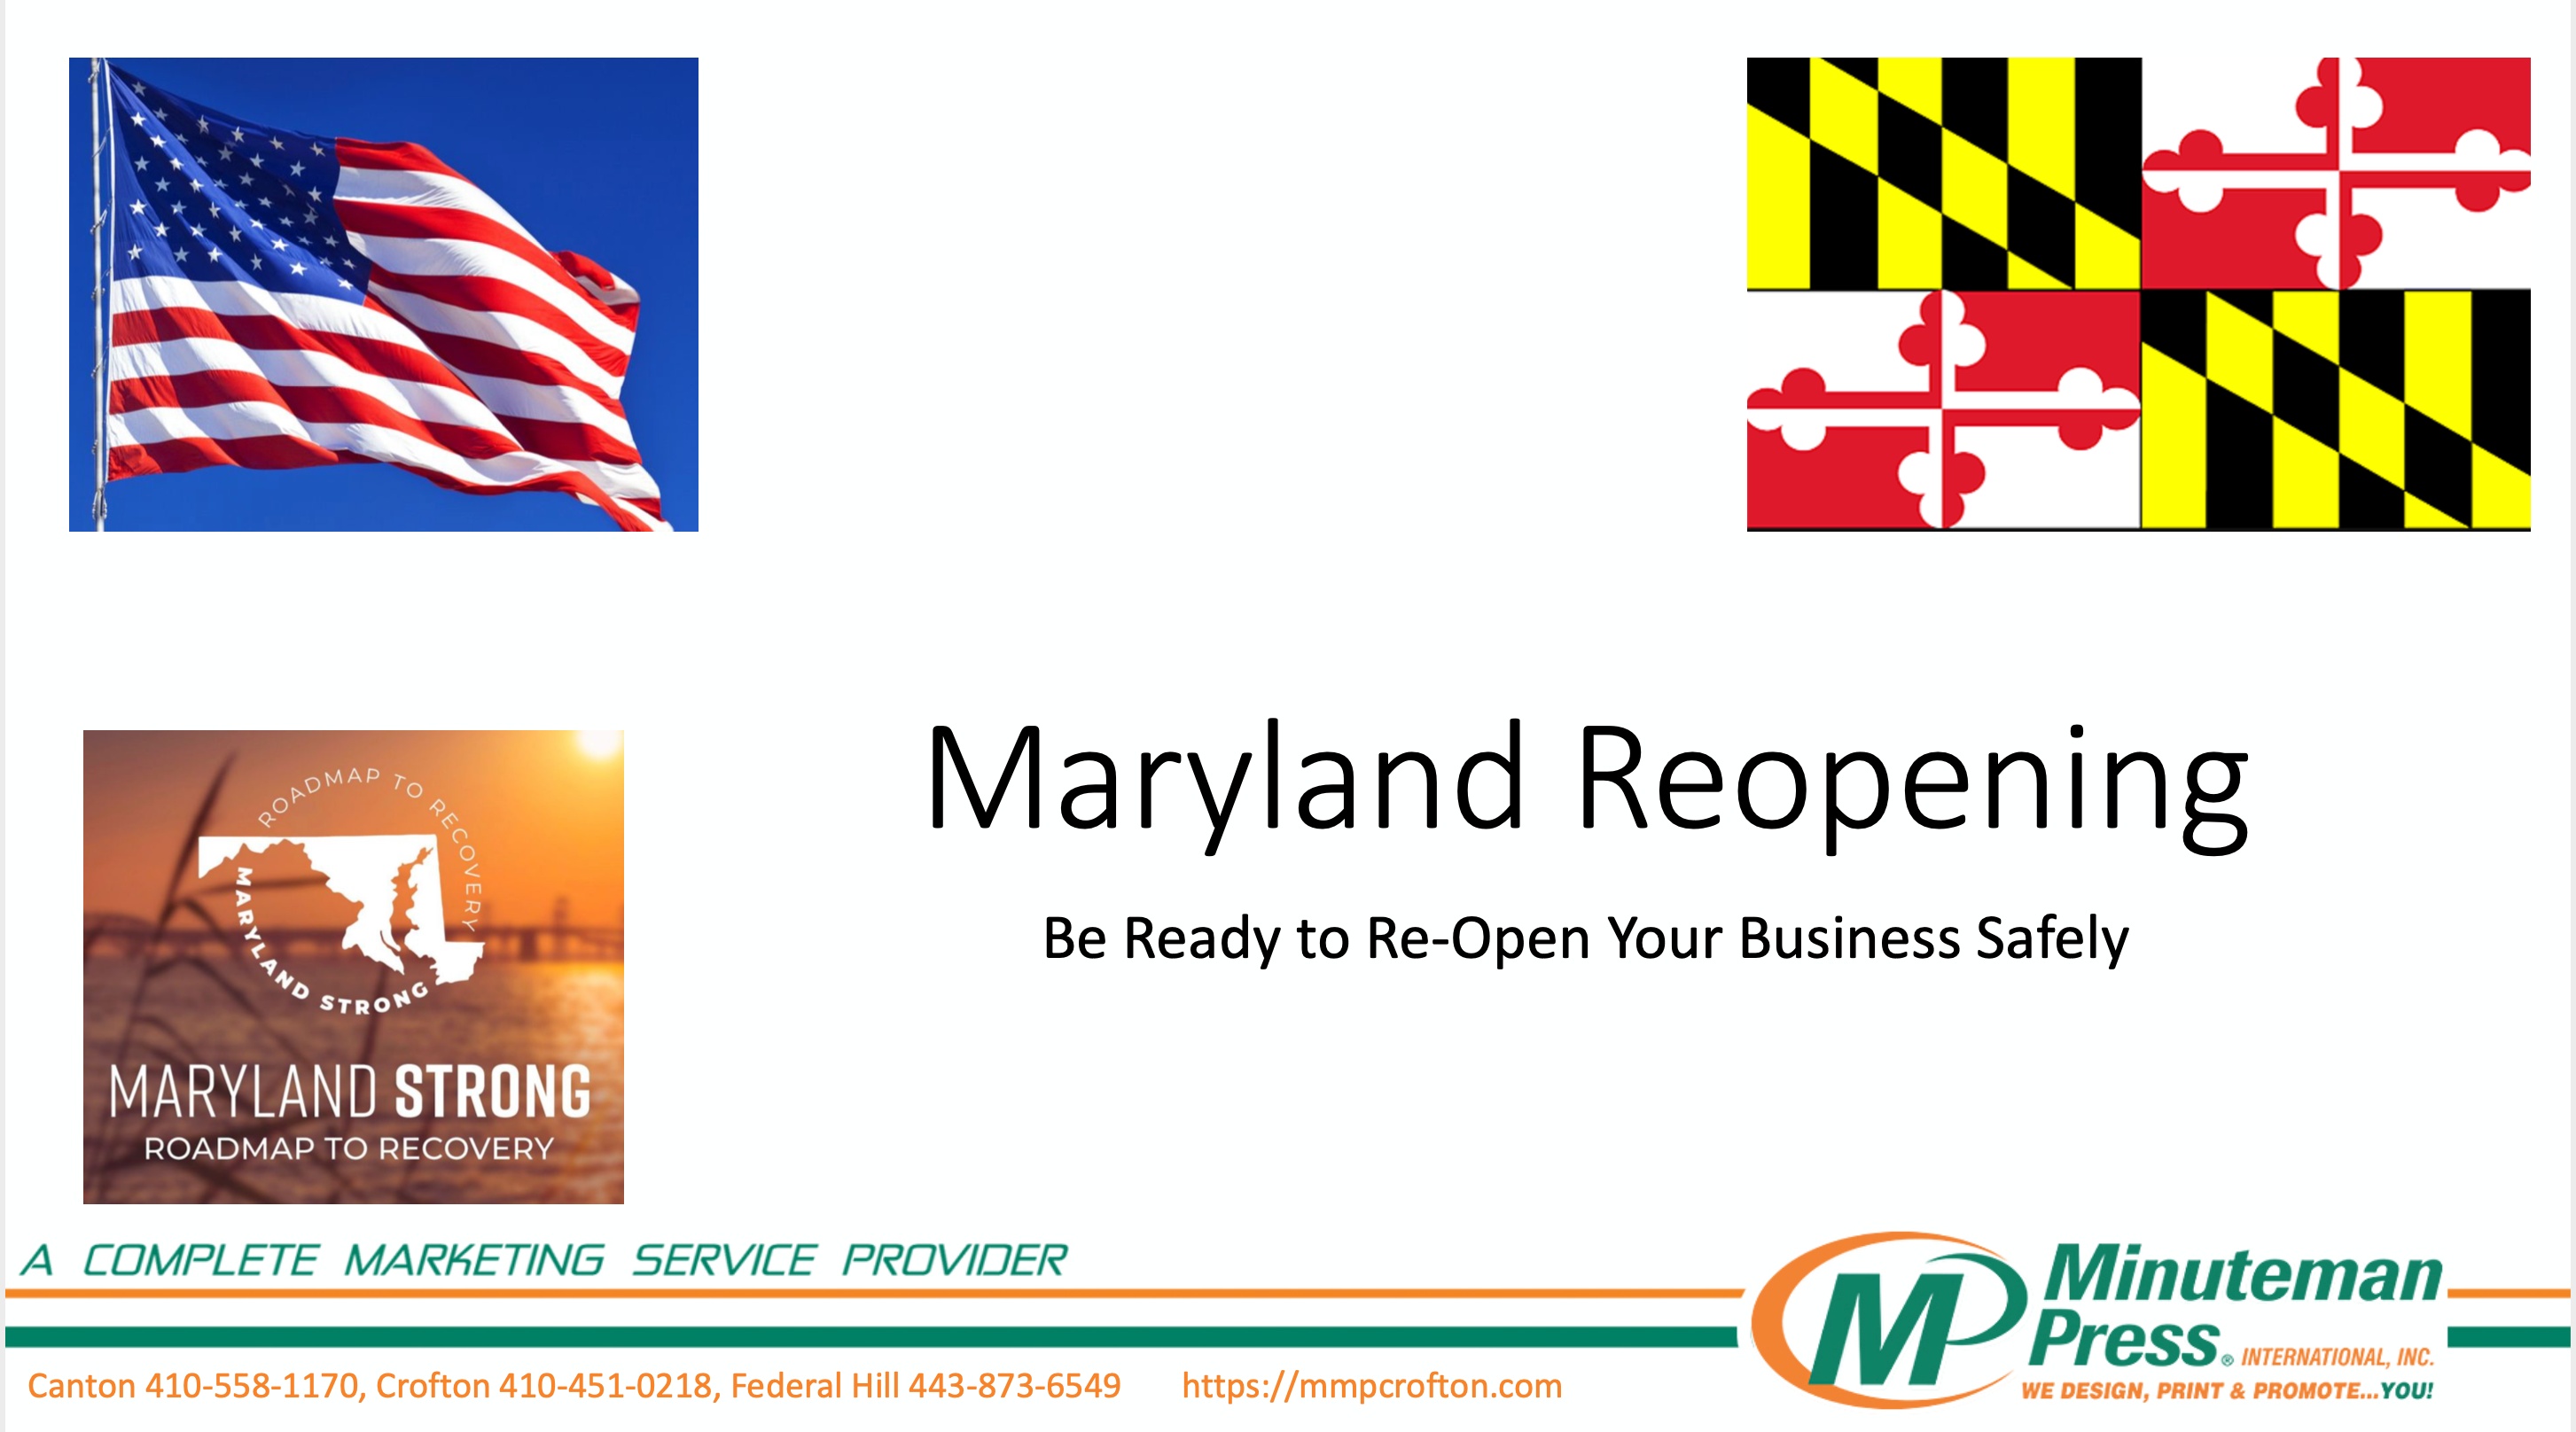 Maryland Reopening